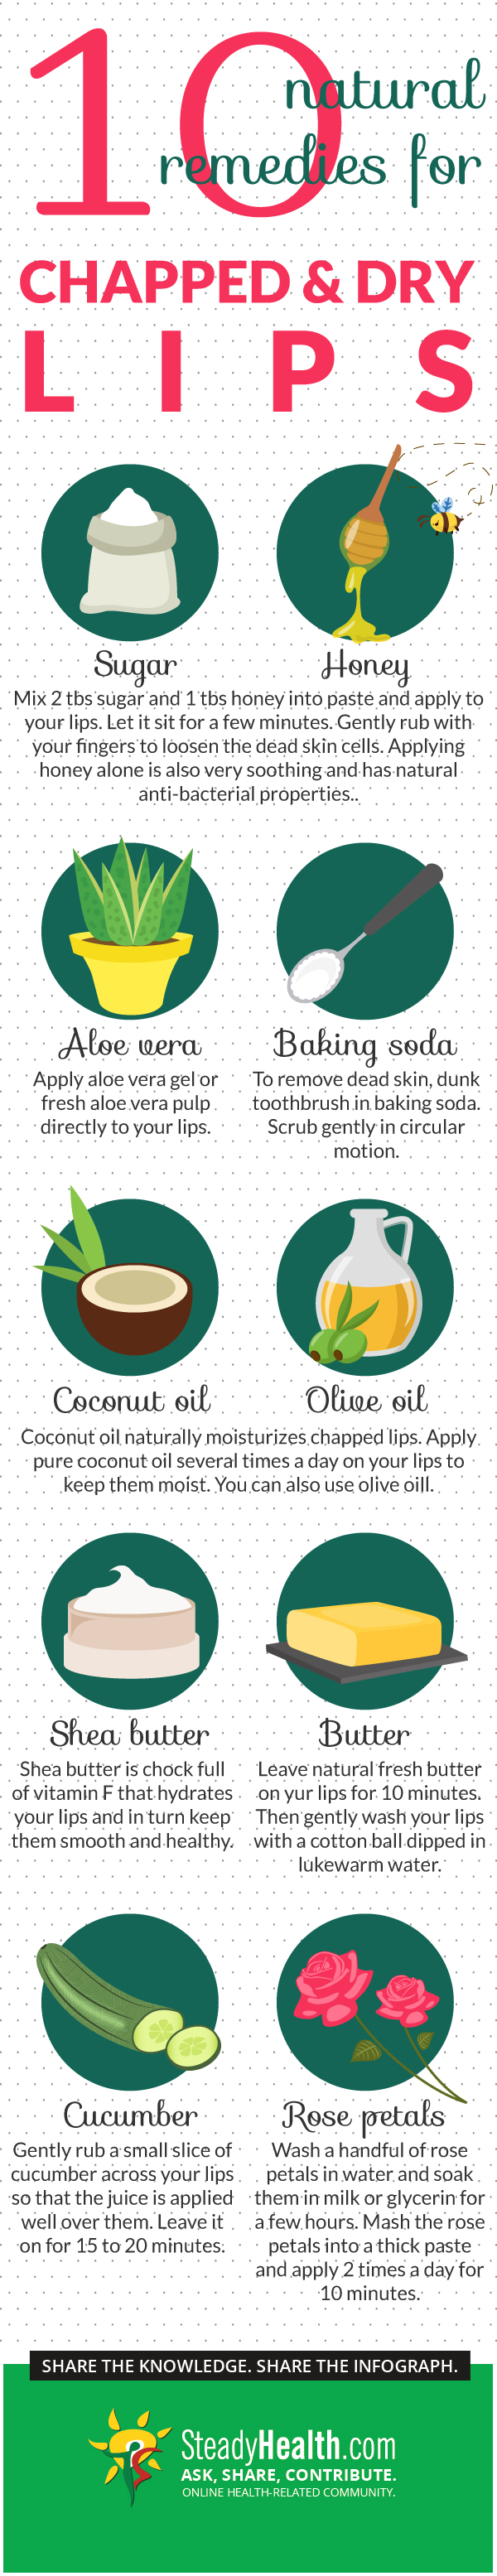 Super Exfoliating Face Mask Via Pindemy More Share This Image With Your  Friends: Email Embed How To Soothe Dry And Chapped Lips